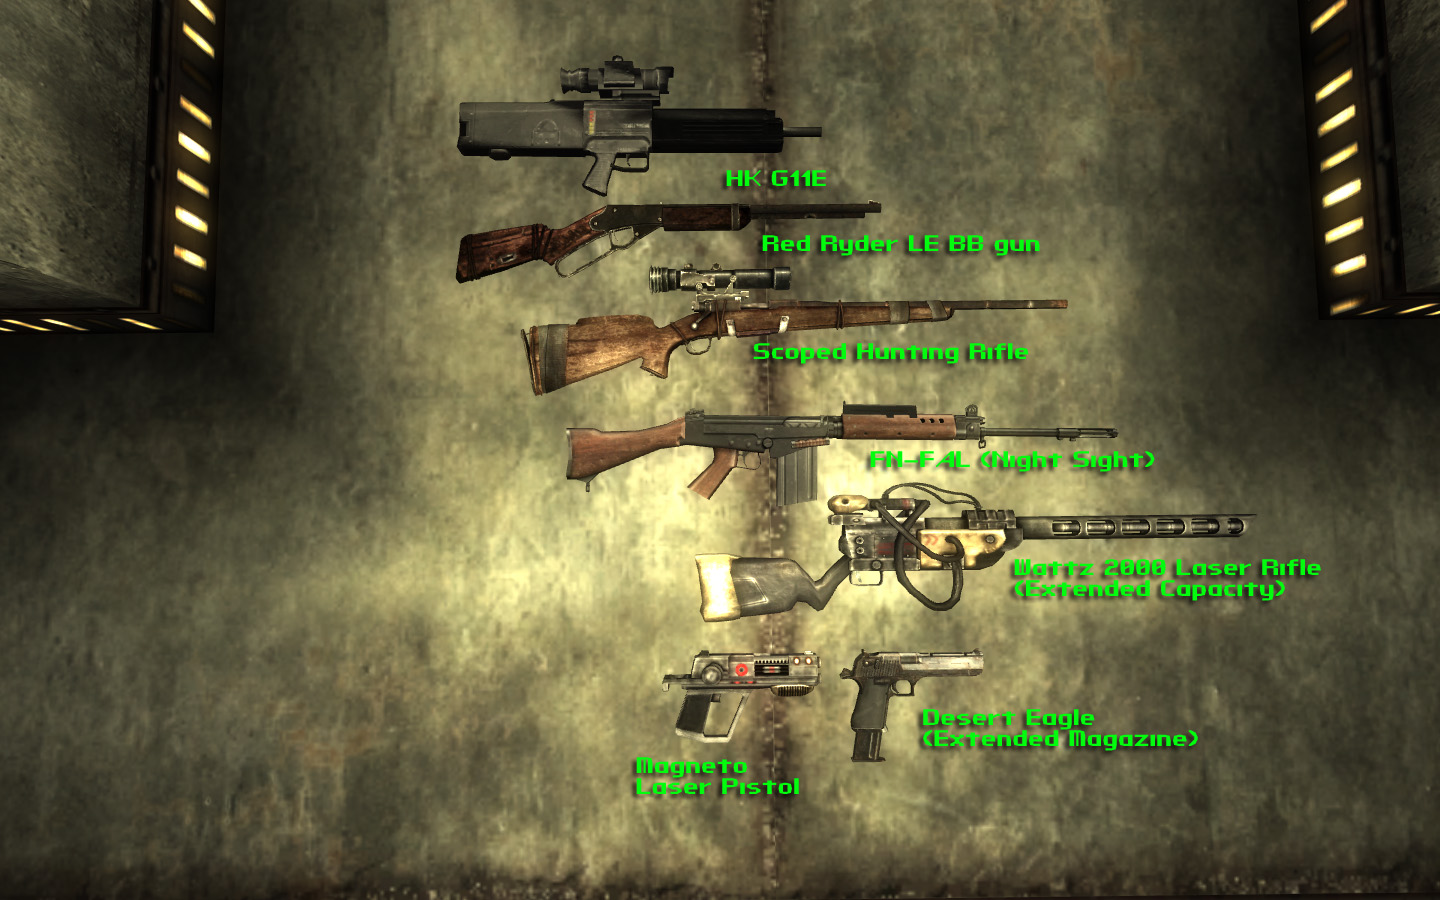 Classic Fallout Weapons BETA для Fallout 3 - Моды